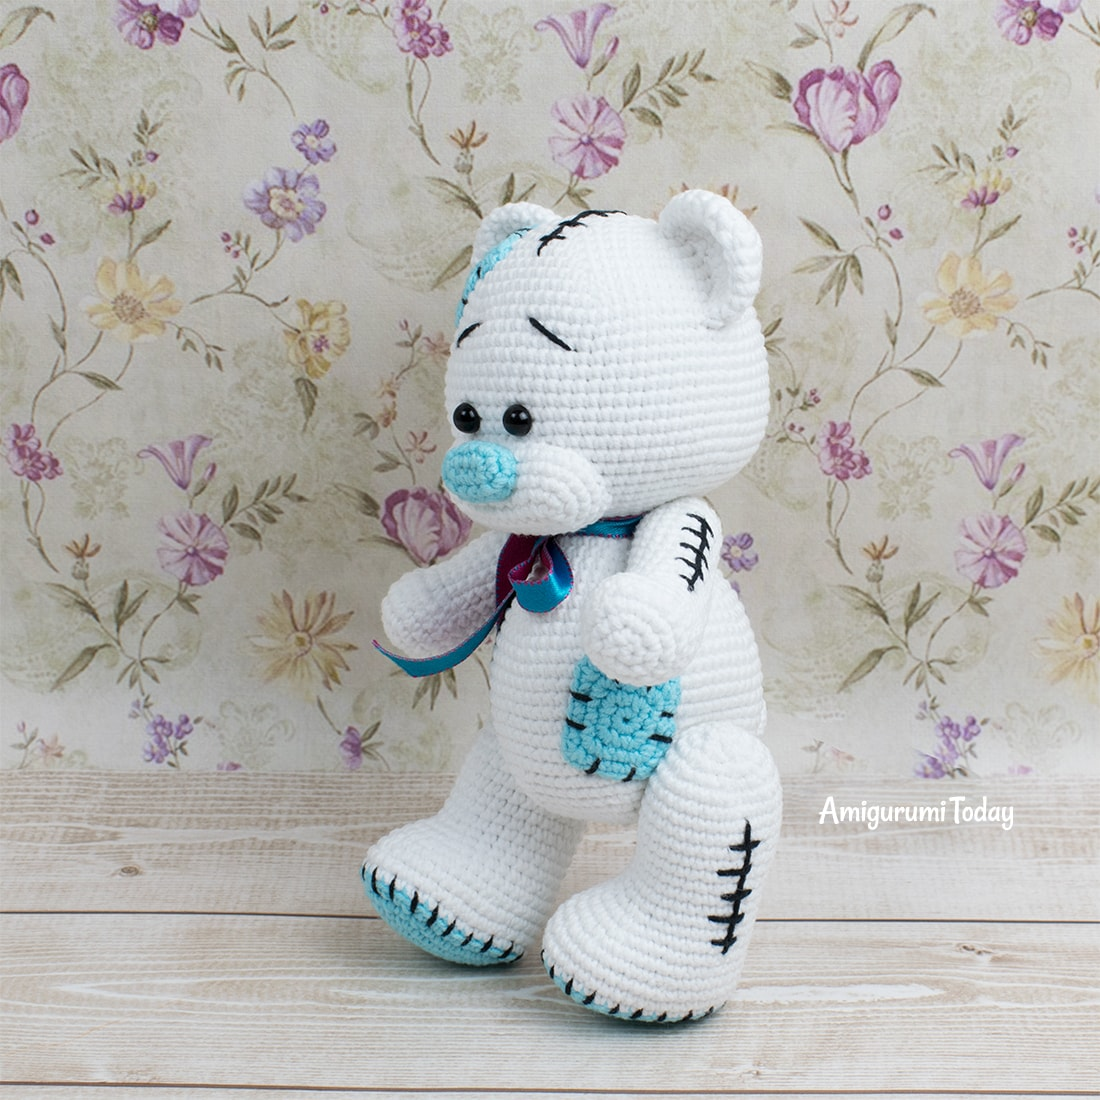 Amigurumi bear crochet pattern designed by Amigurumi Today